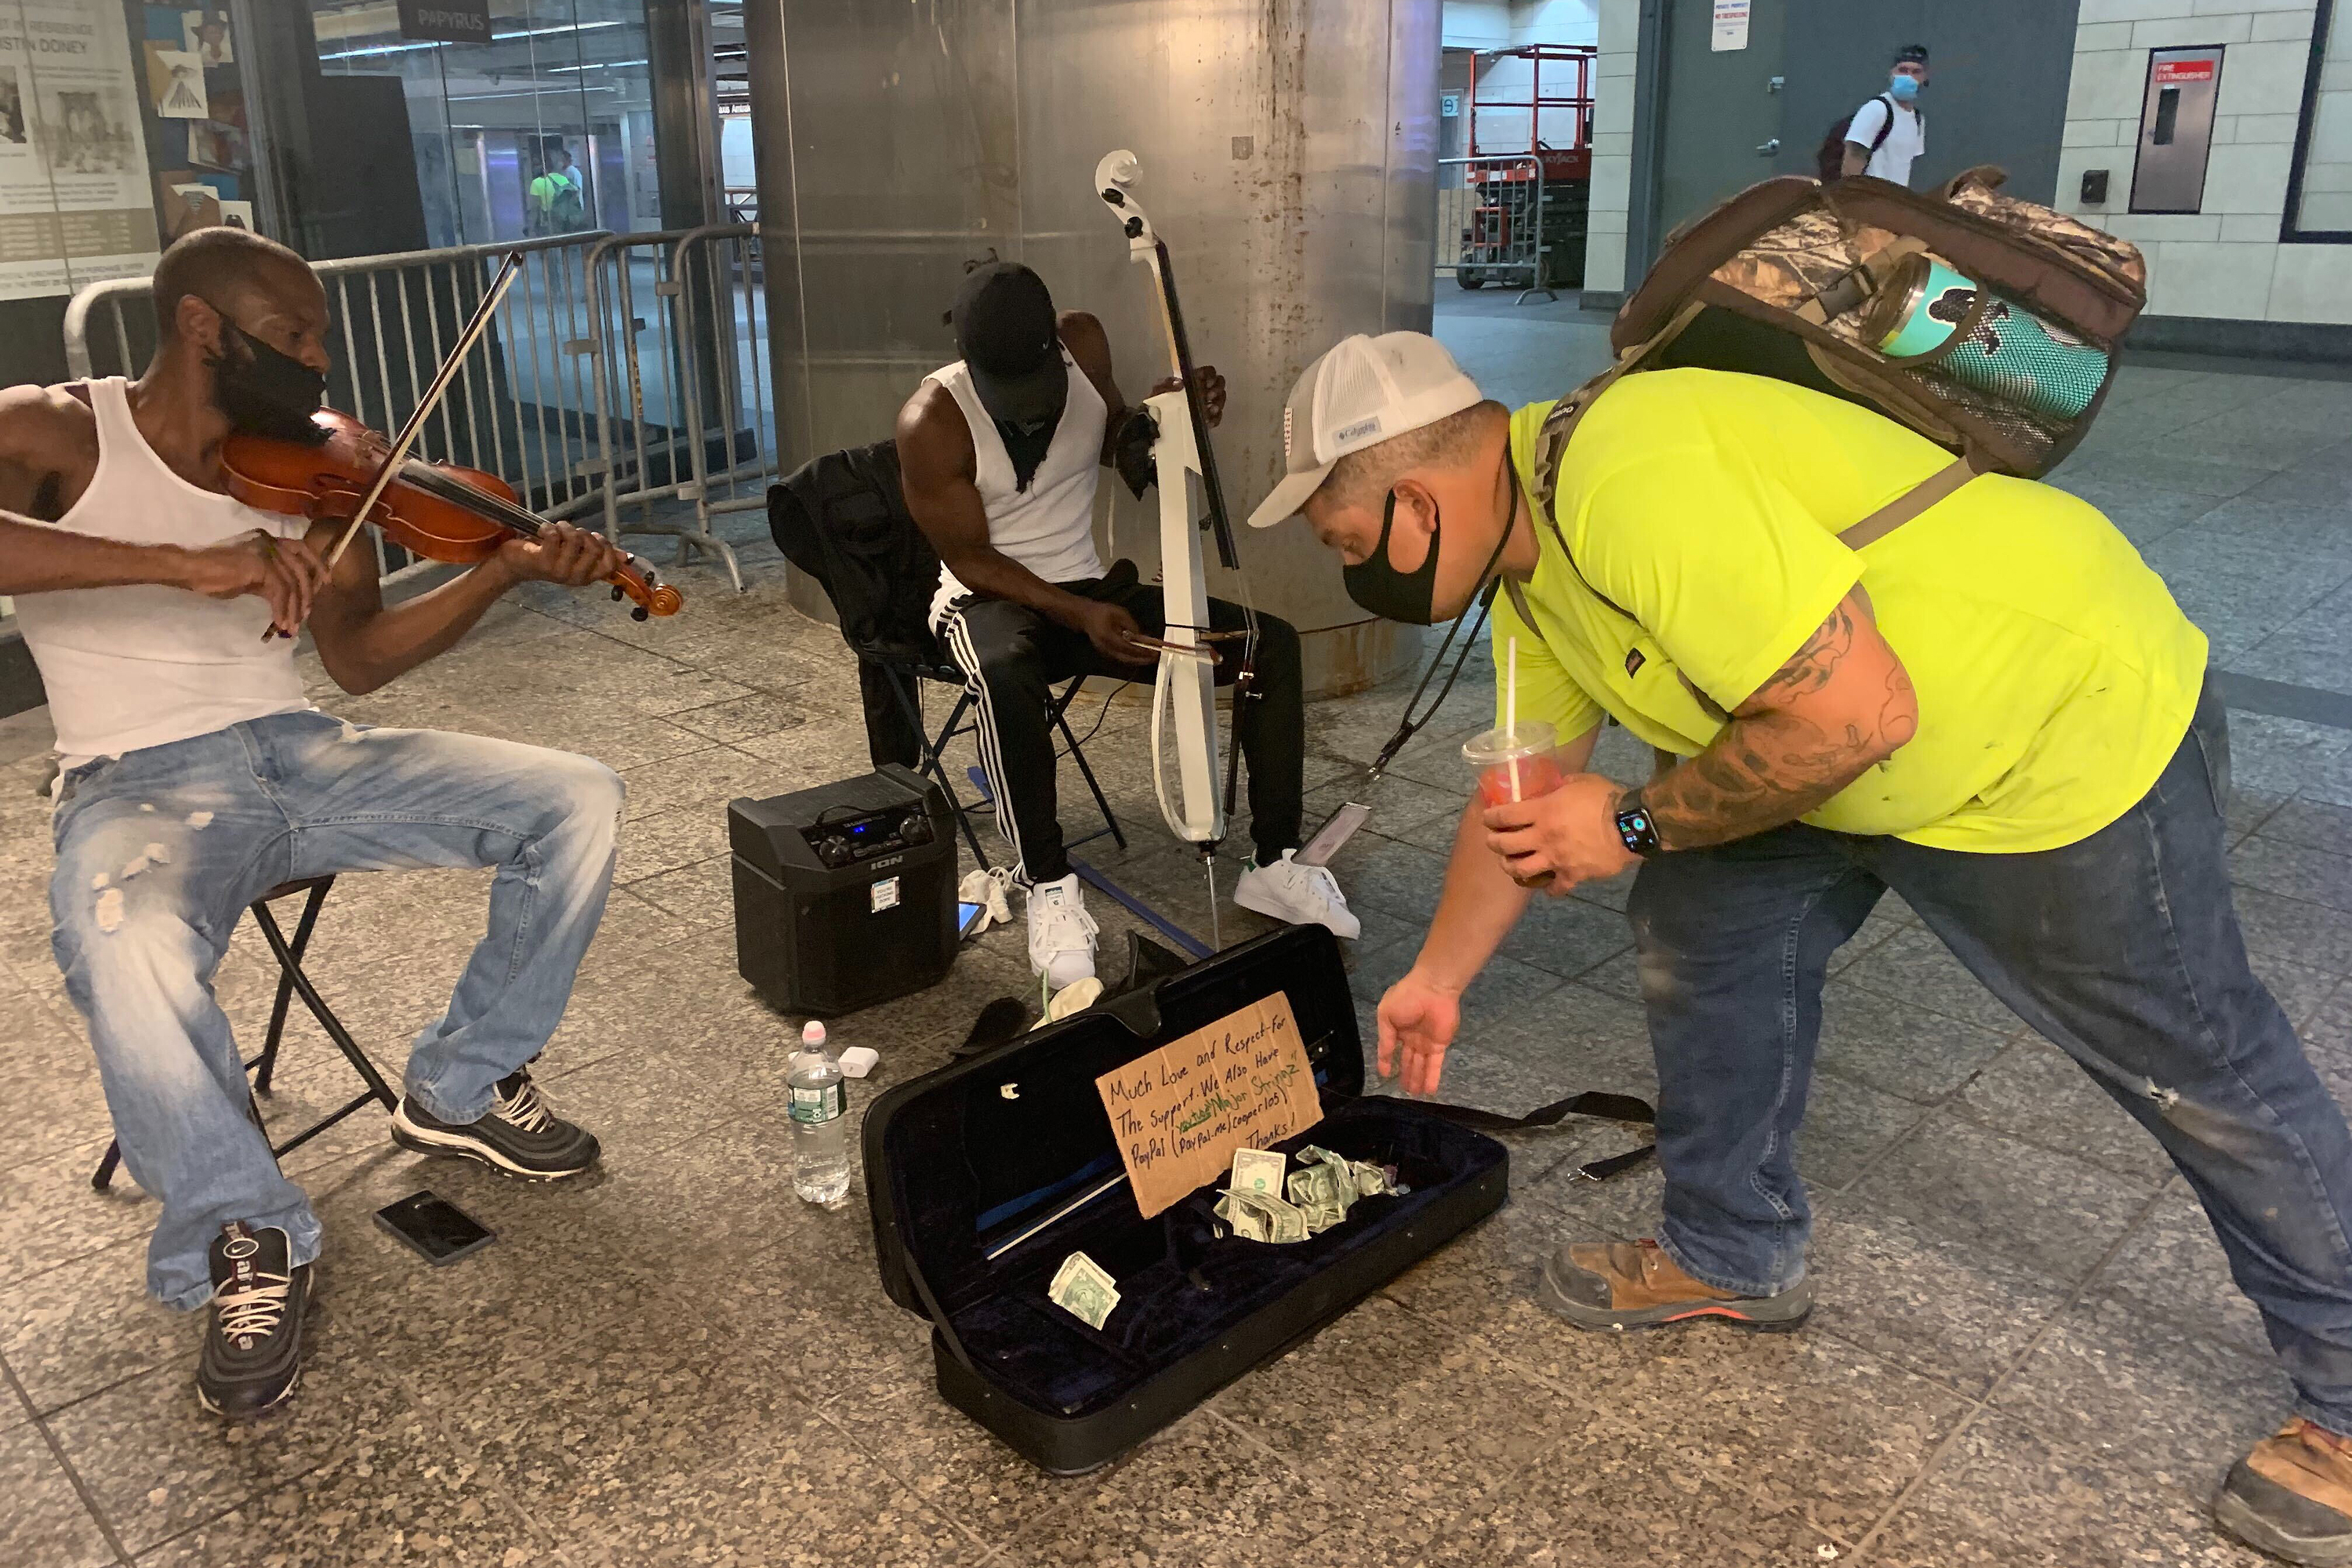 Subway musicians Lamont Stokes, right, and his brother, Antwon, perform near the turnstiles at 34th Street-Penn Station, Aug. 10, 2020.